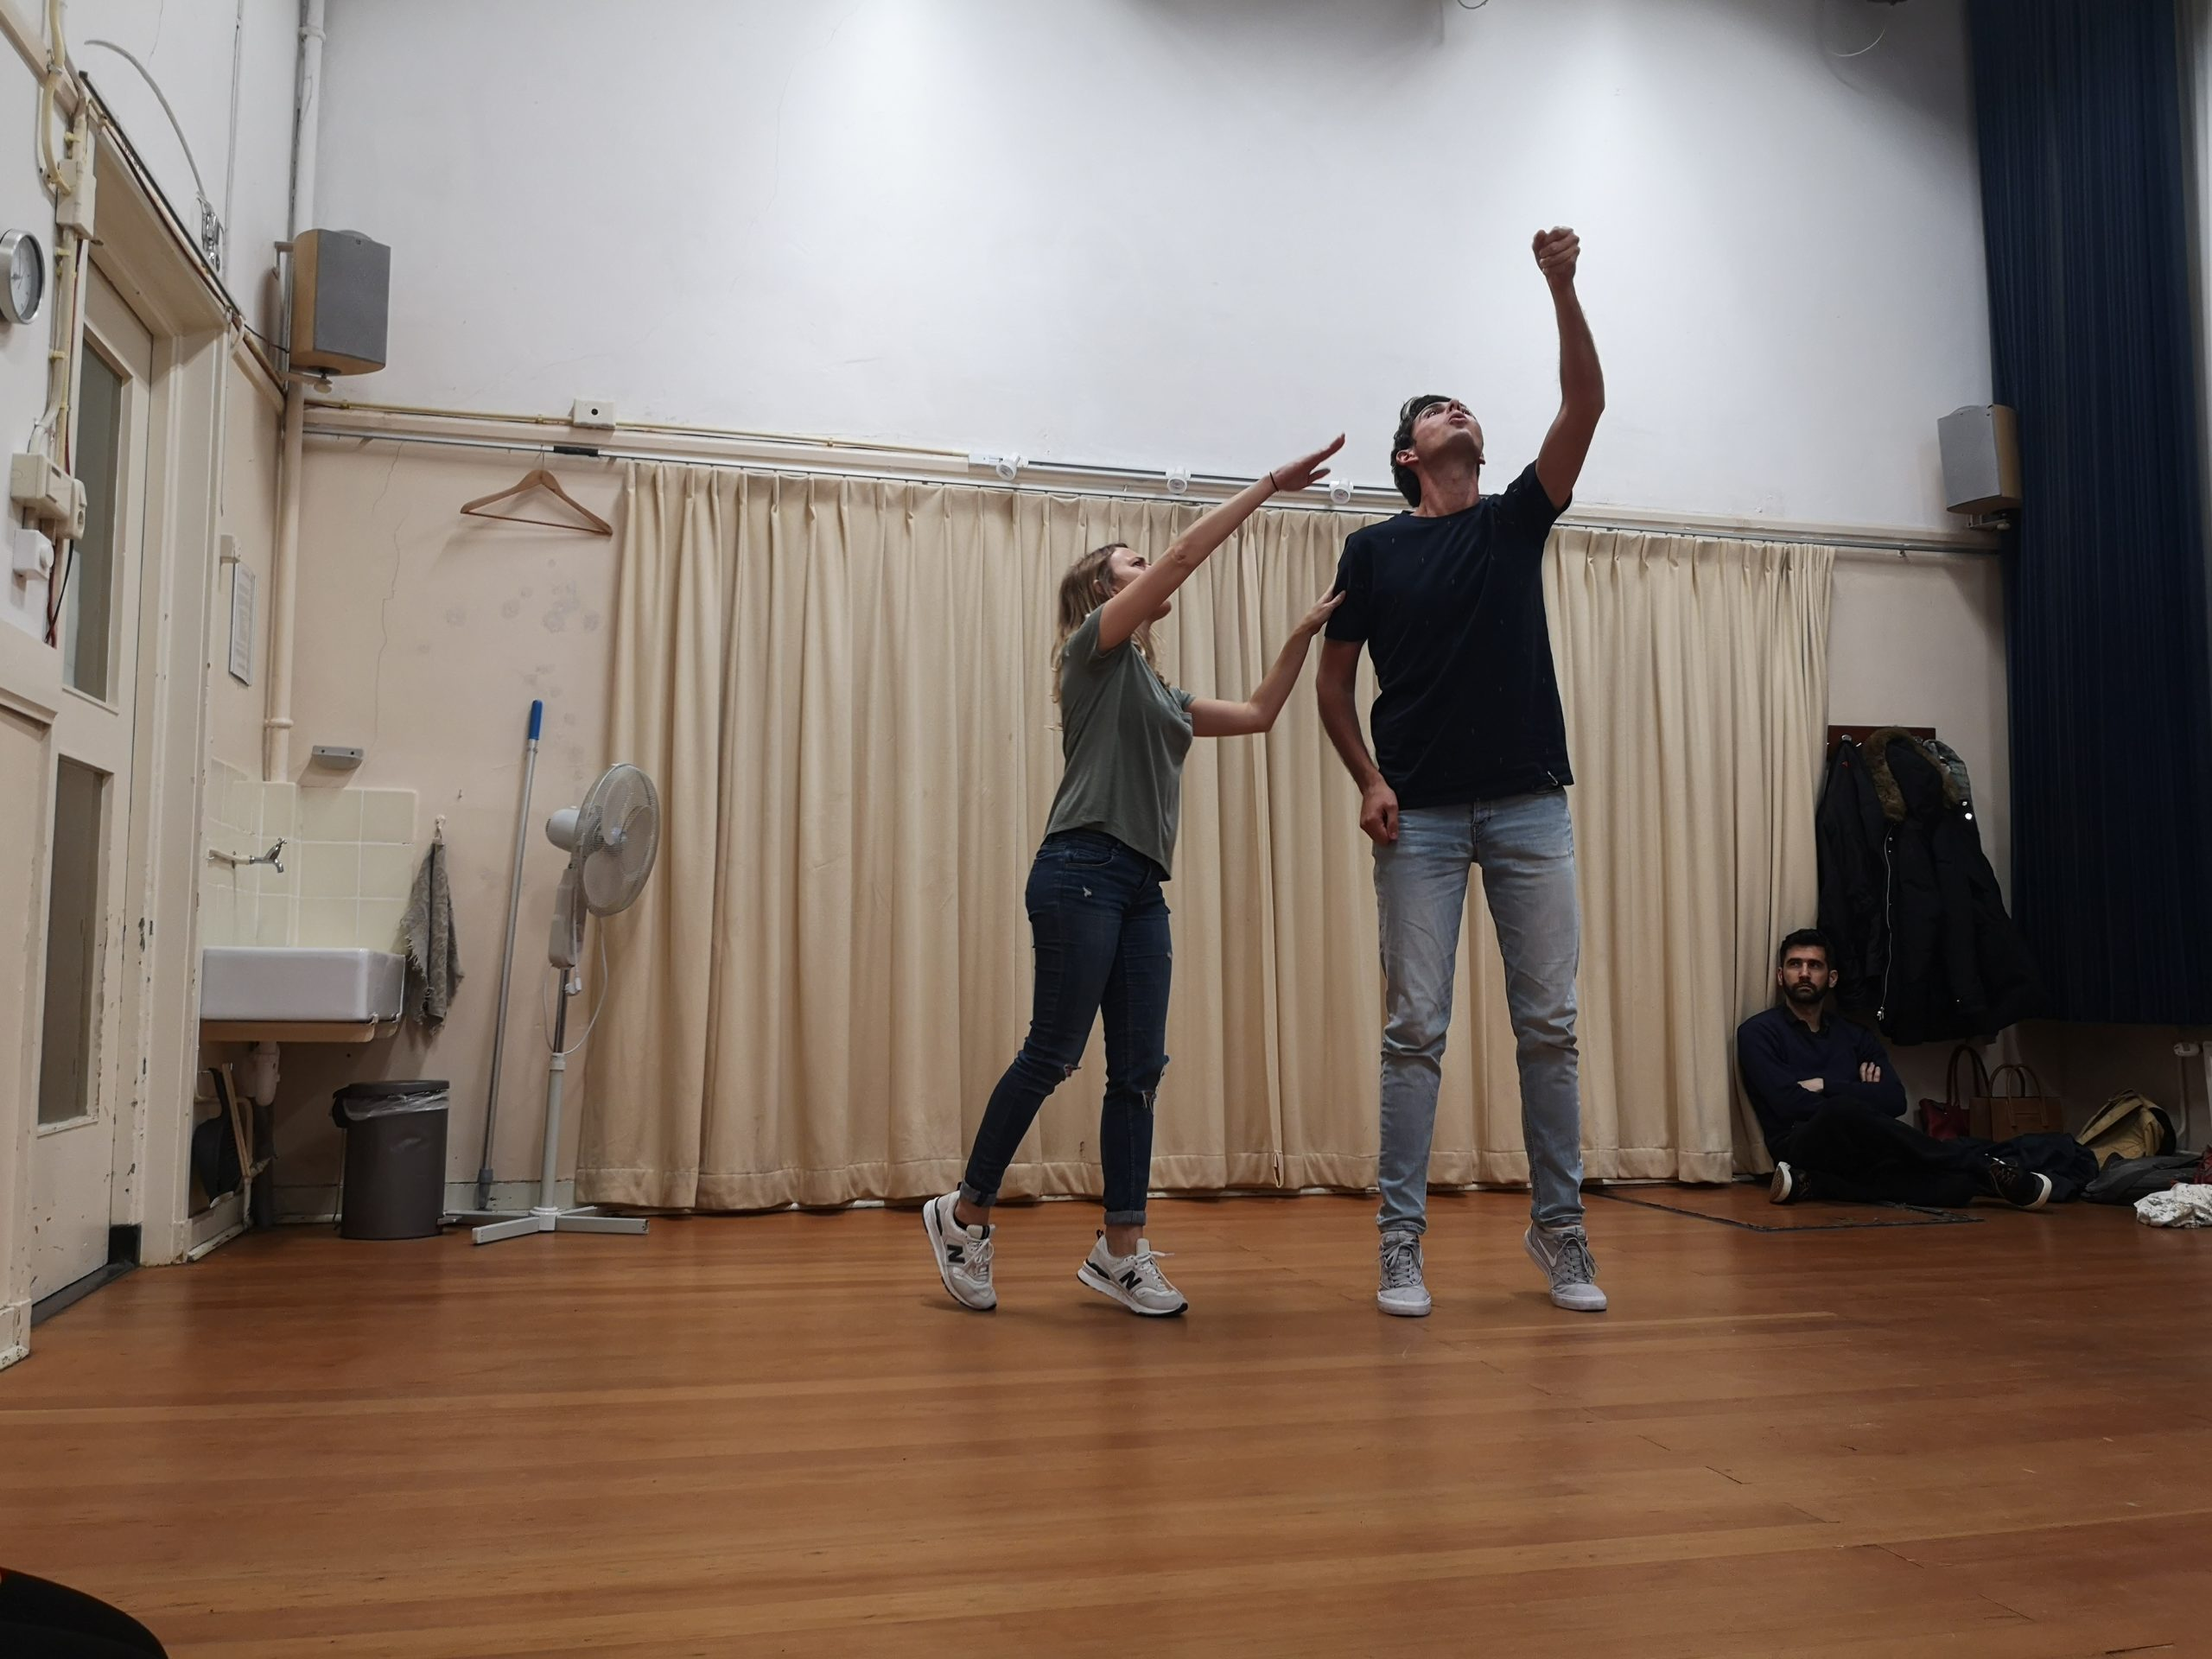 Improv and physical. A man reaches his arm up like he's holding something. A woman is standing next to him, also reaching her arm, pointing at the imaginary object he's holding.